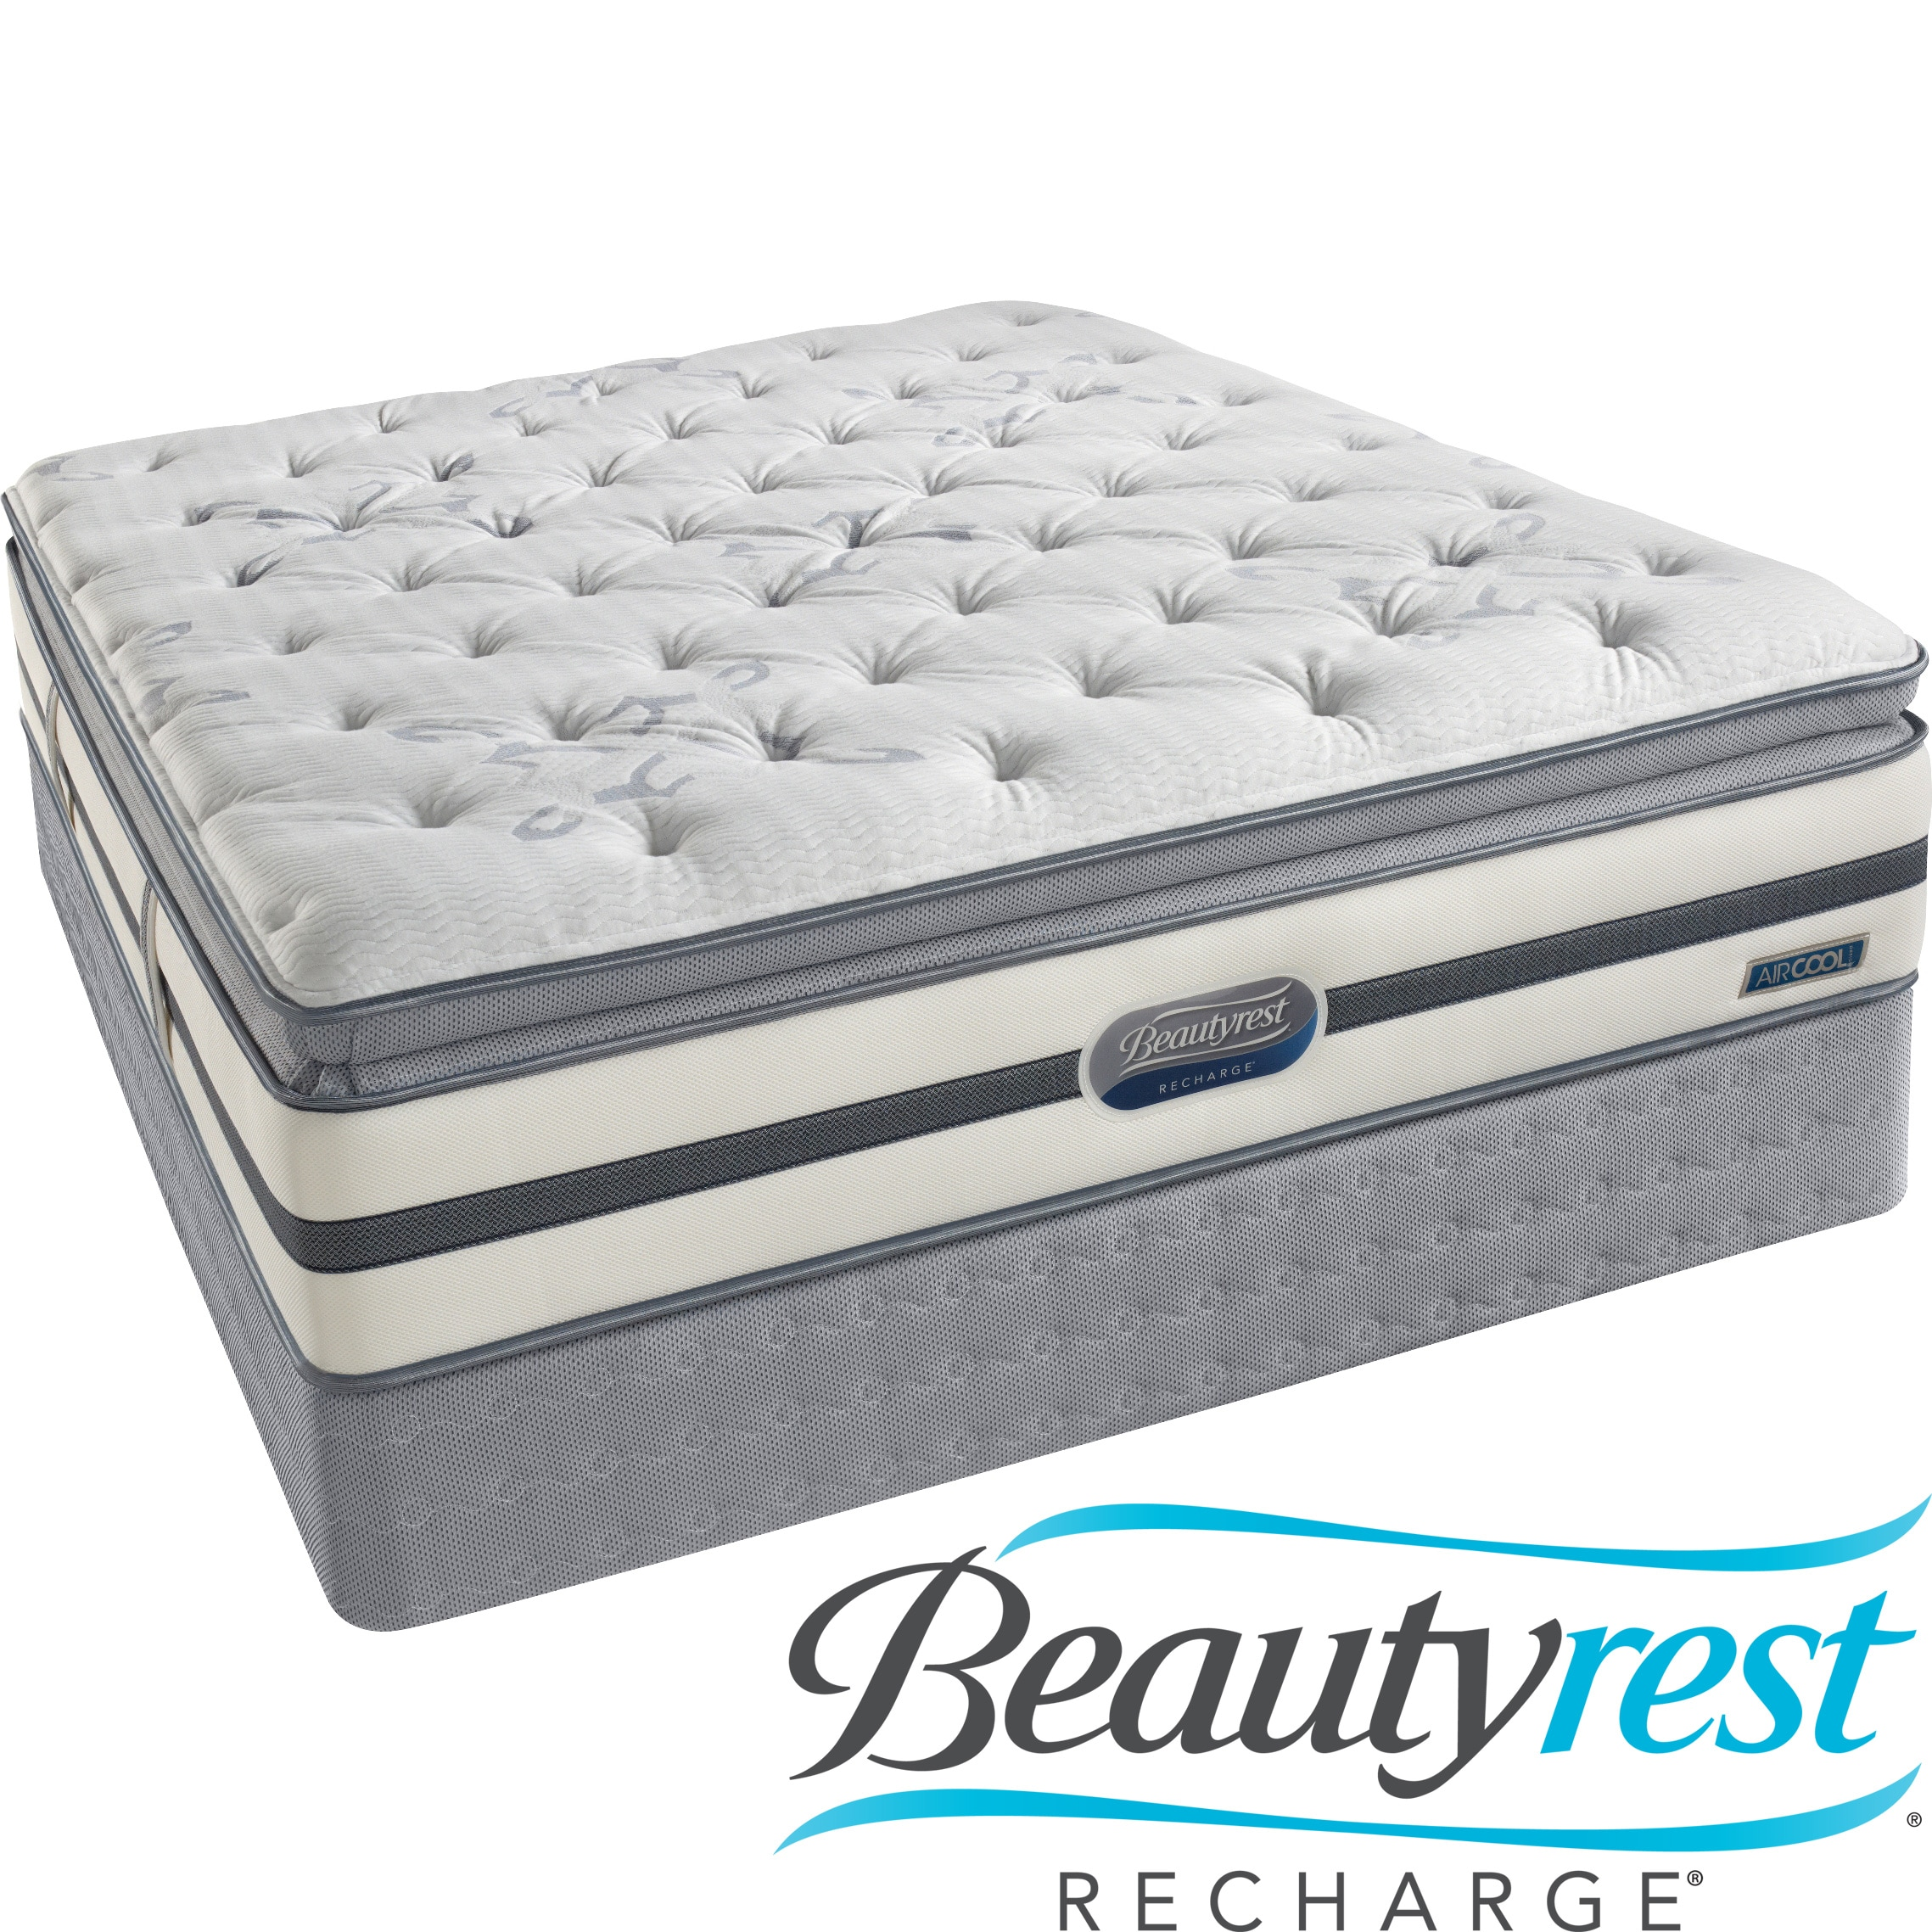 Beautyrest Recharge Spalding Luxury Firm Queen Mattress Set Bed Mattress Sale